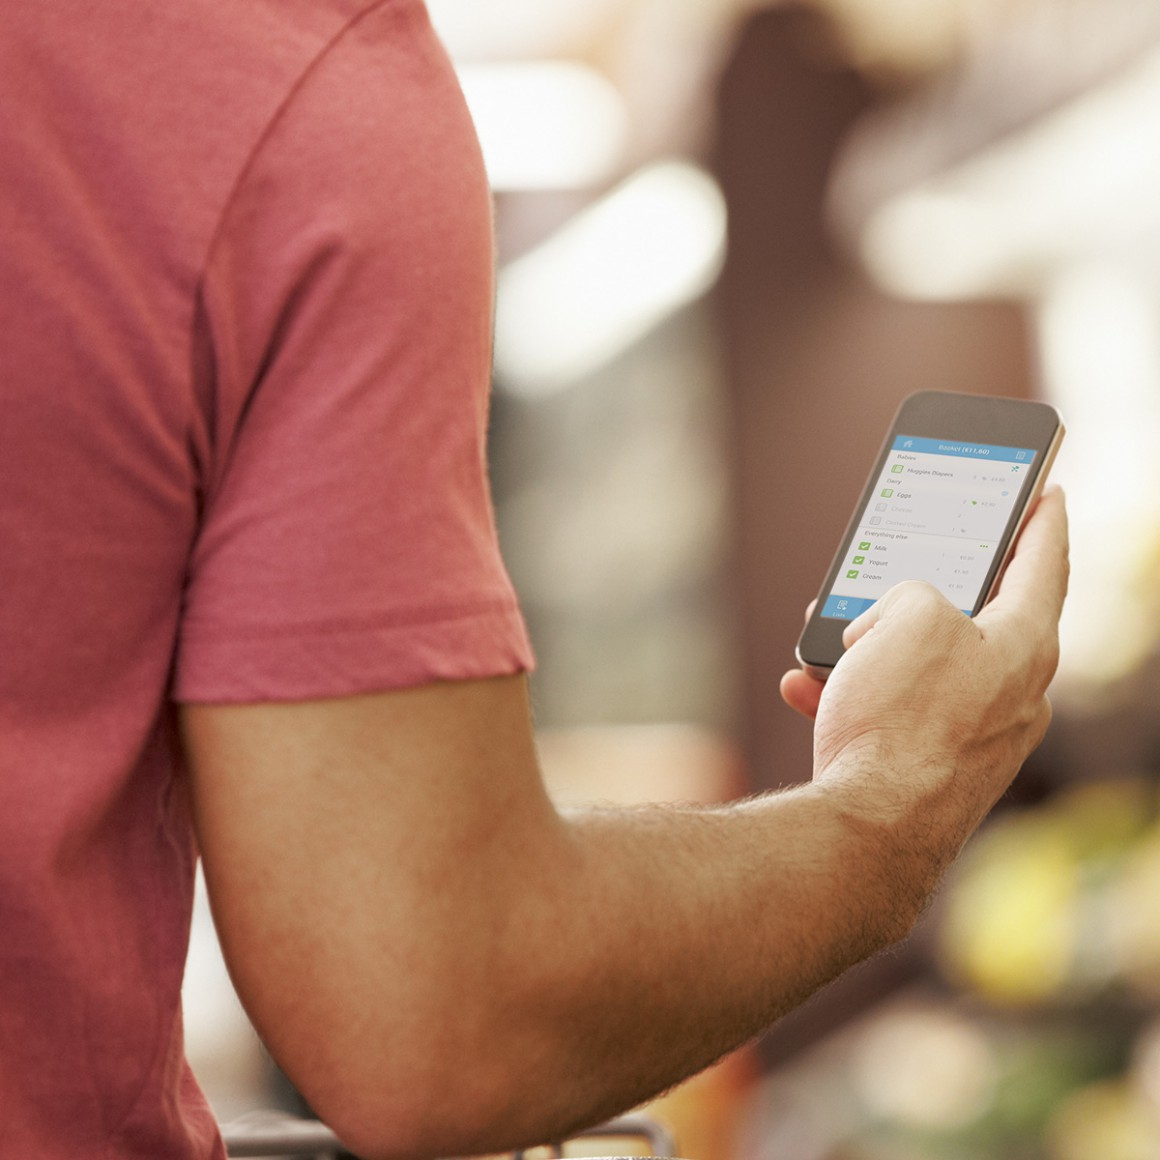 Get product information through your self-scanning device